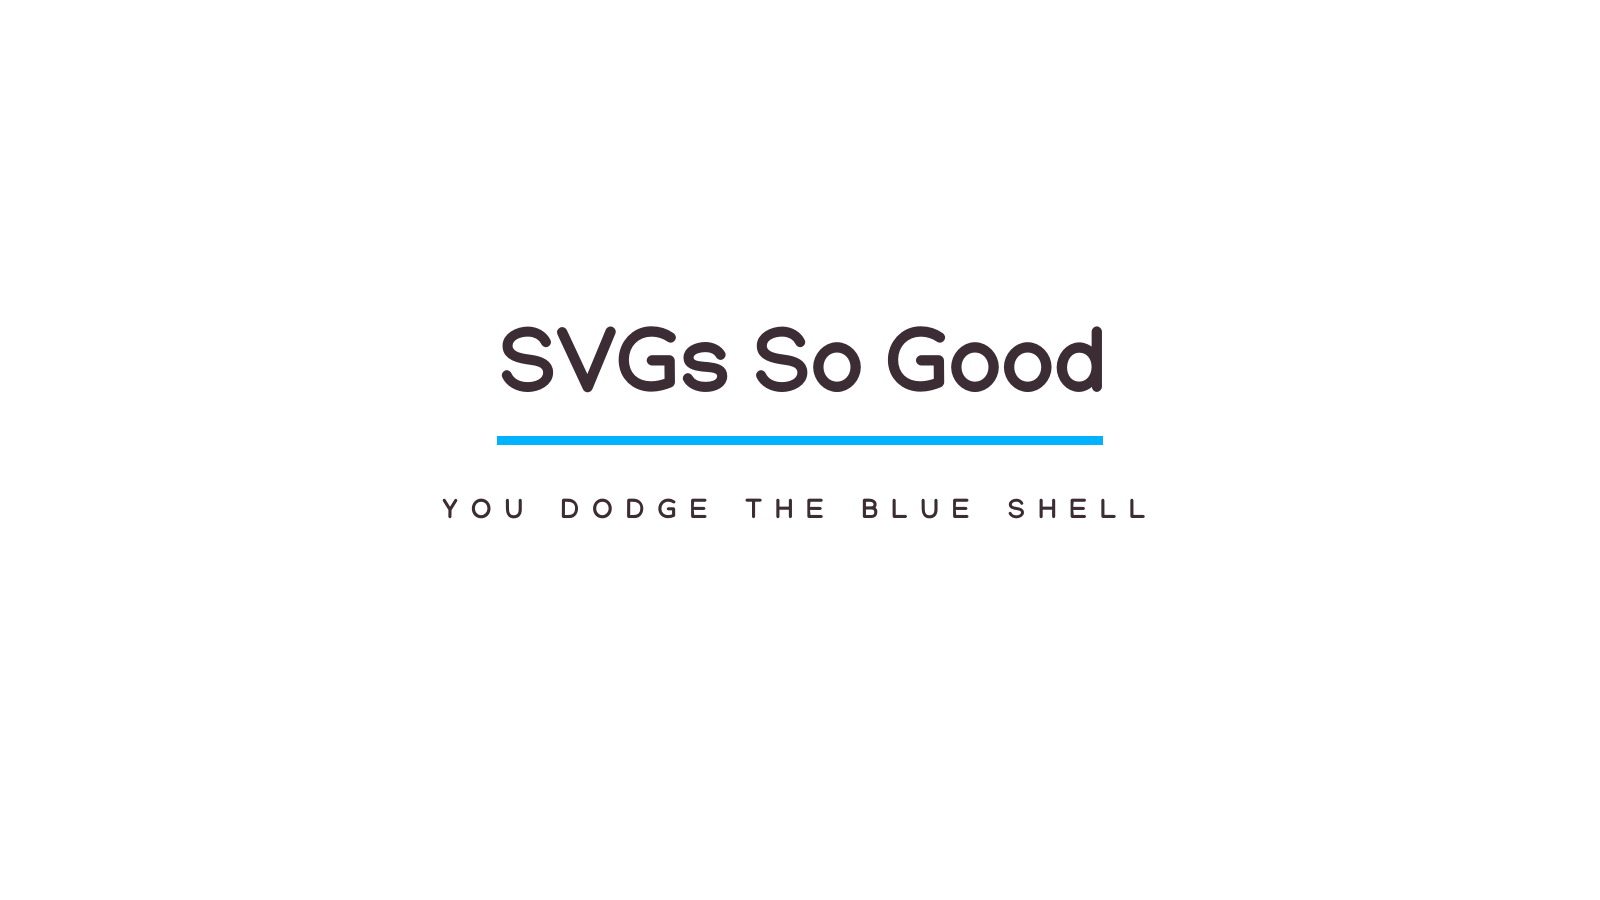 SVGs So Good, You Dodge the Blueshell